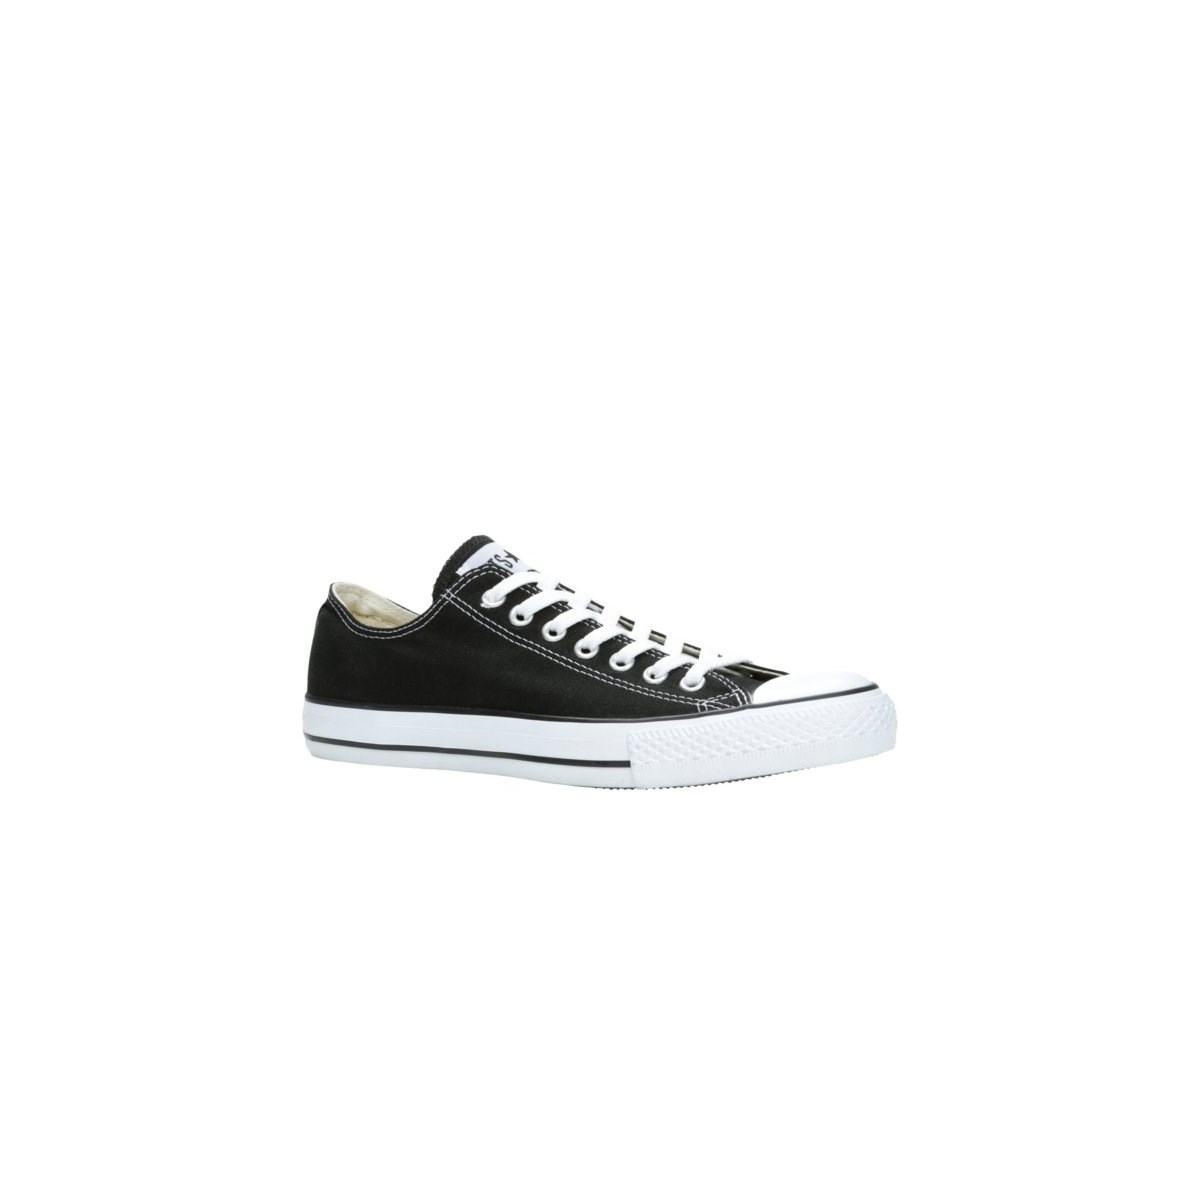 Men's Chuck Taylor Classic Low Sneaker in Black